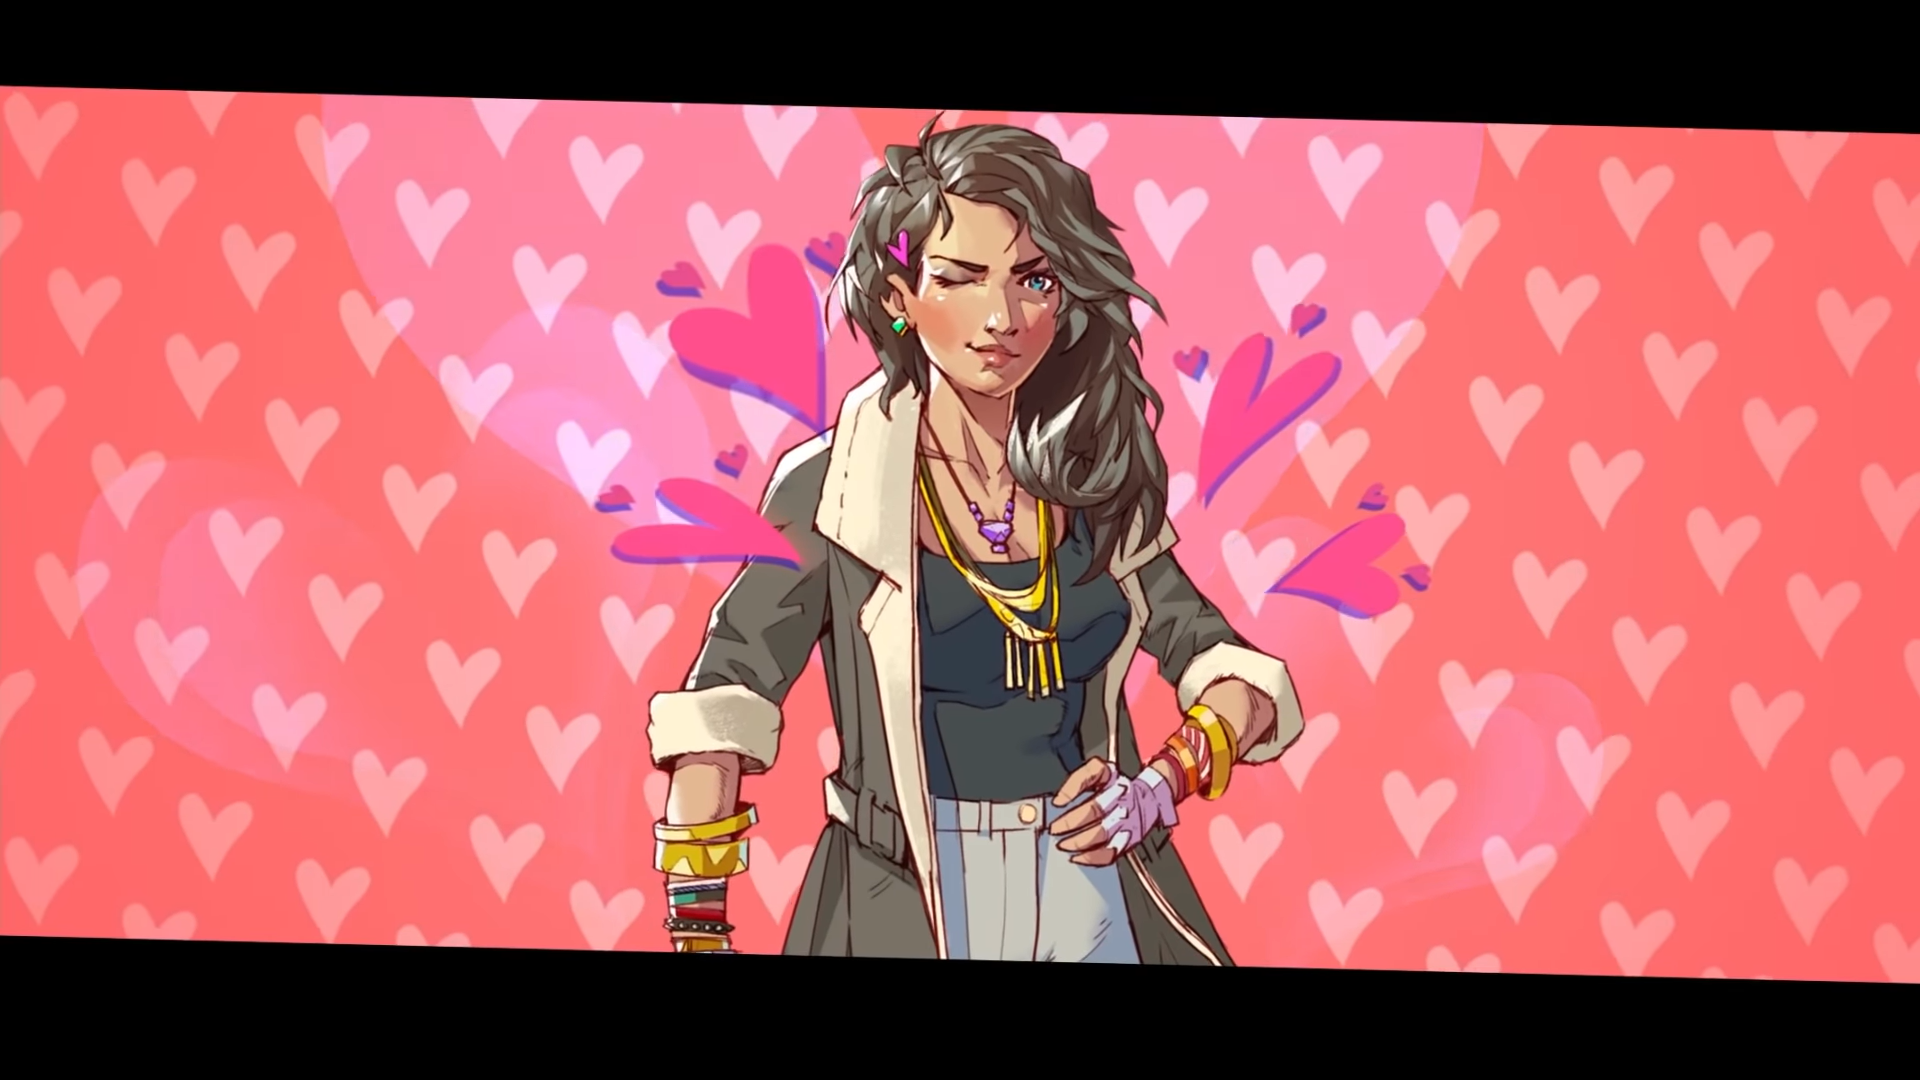 a woman with a gold necklace and lots of bracelets, with brown hair. she is standing in front of a background with pink hearts and she's also winking